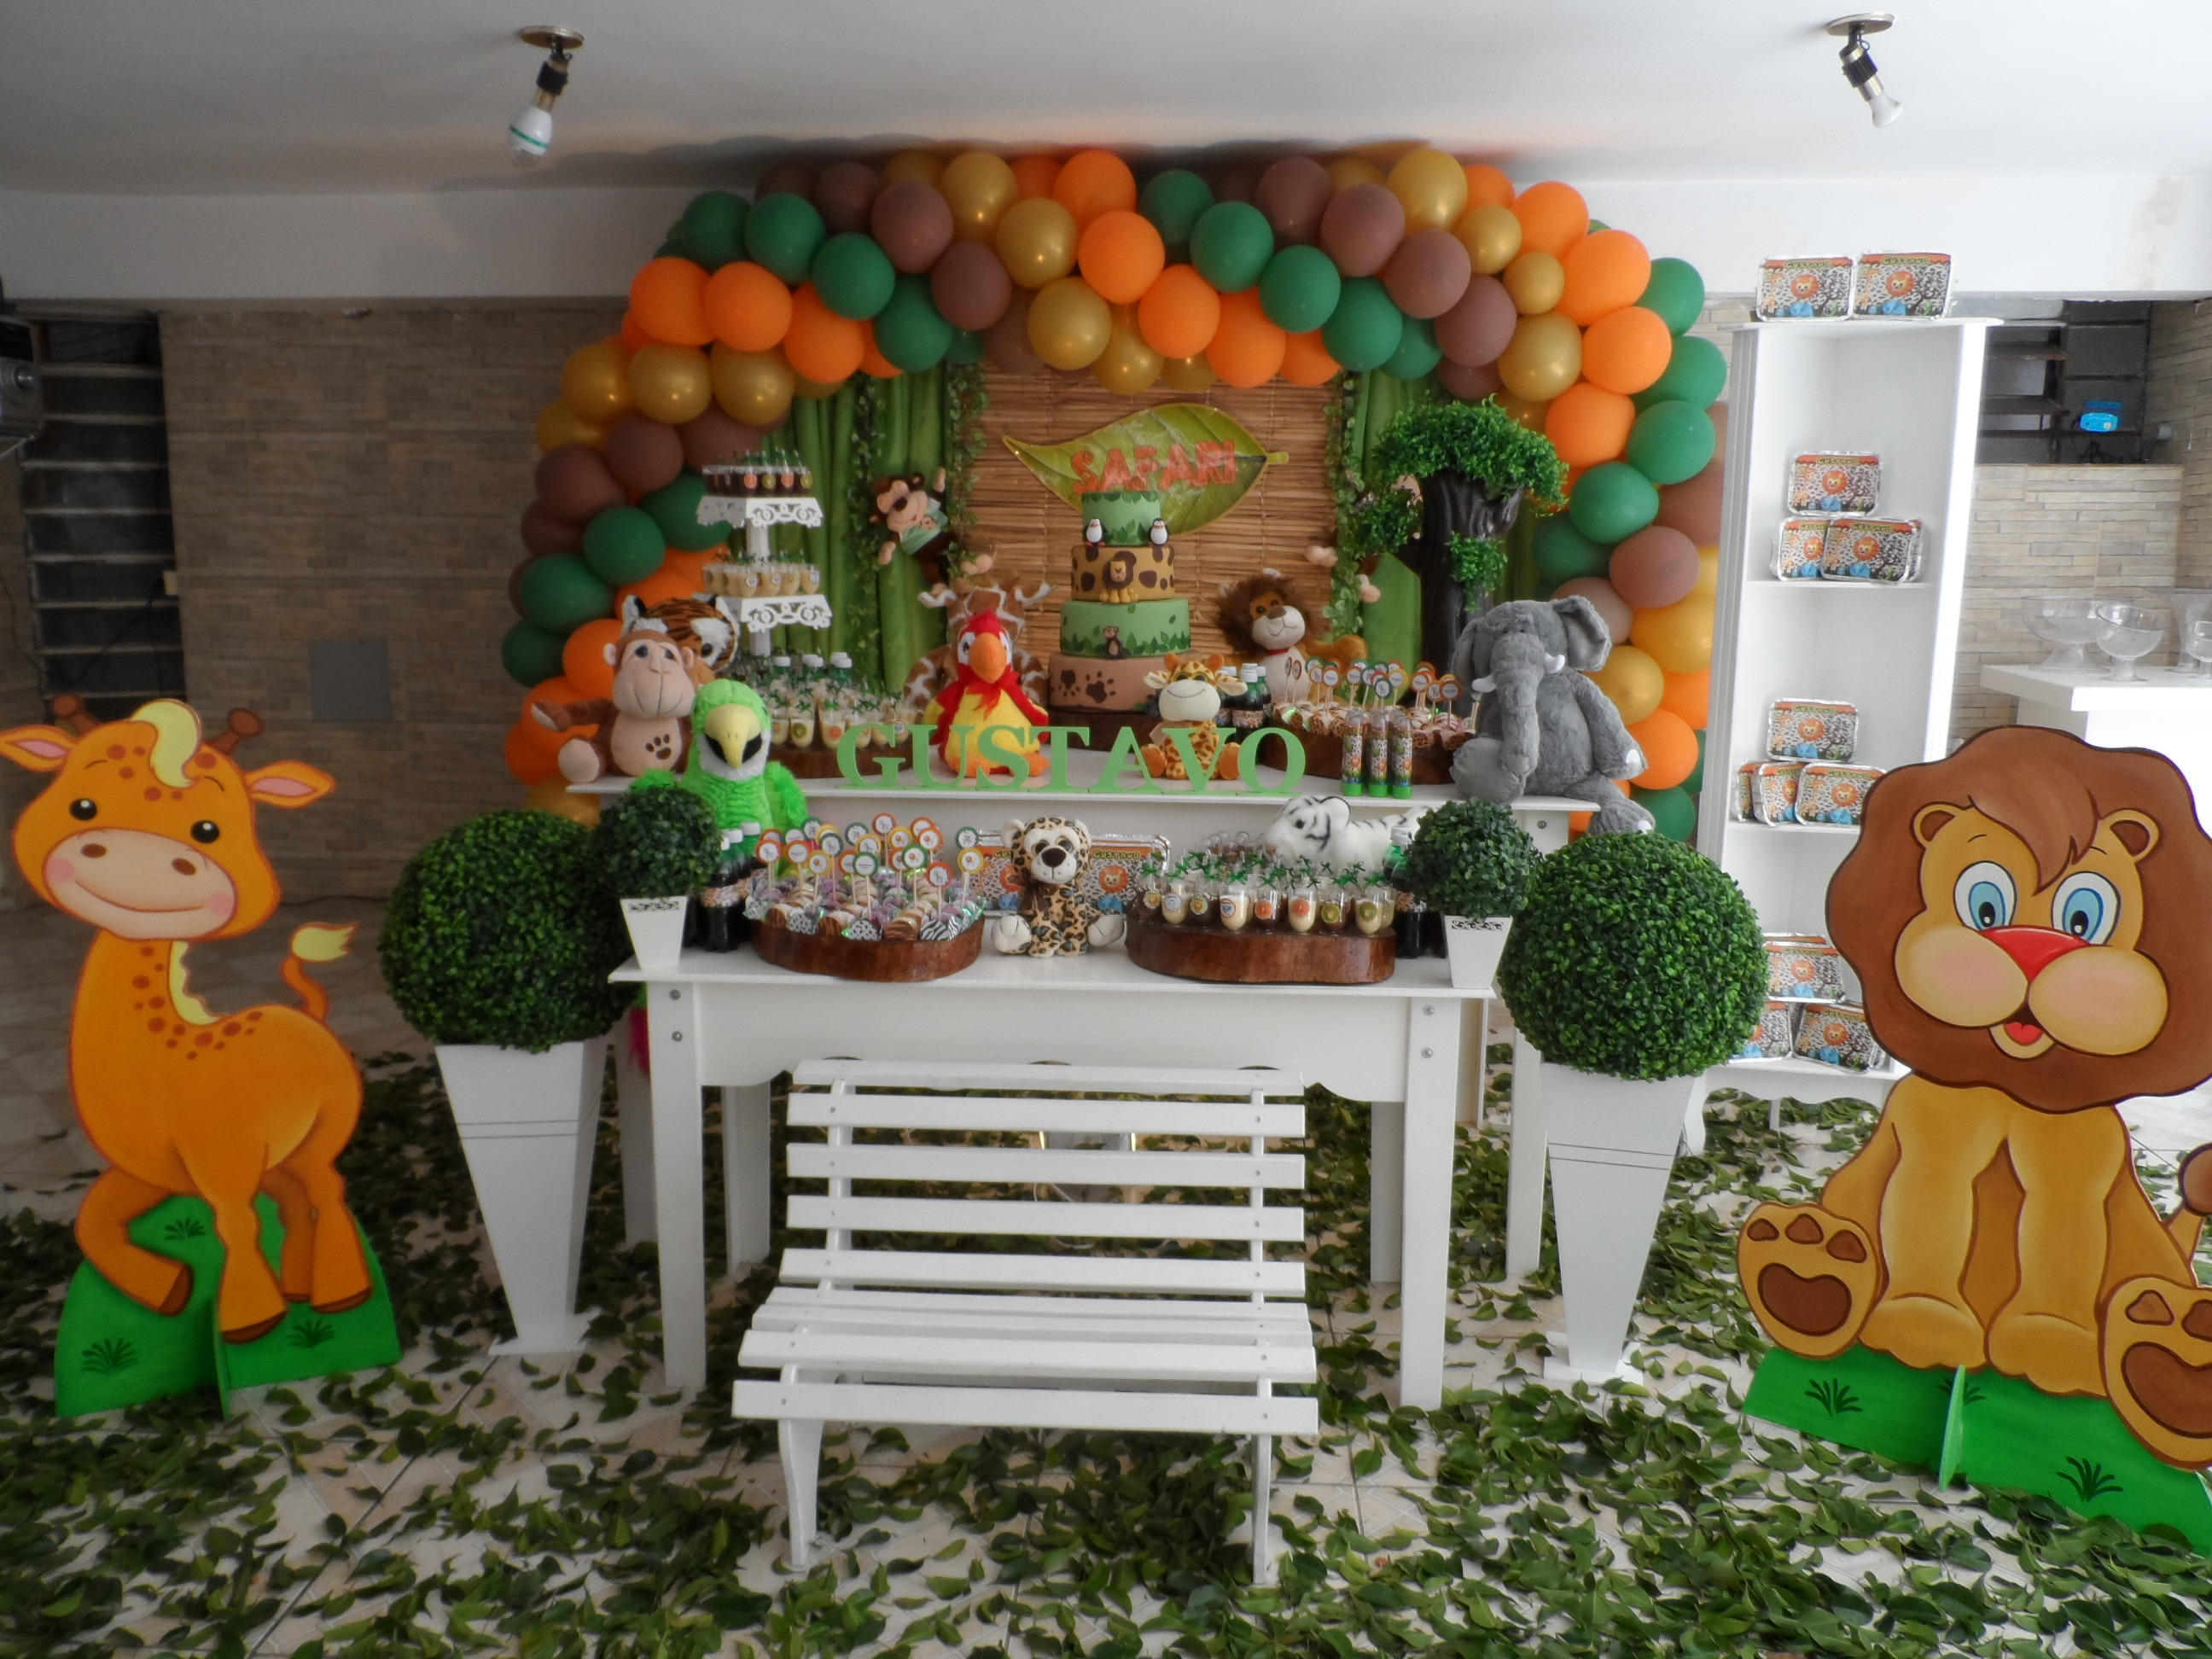 decoracao festa safari : decoracao festa safari:Festa Safari Infantil